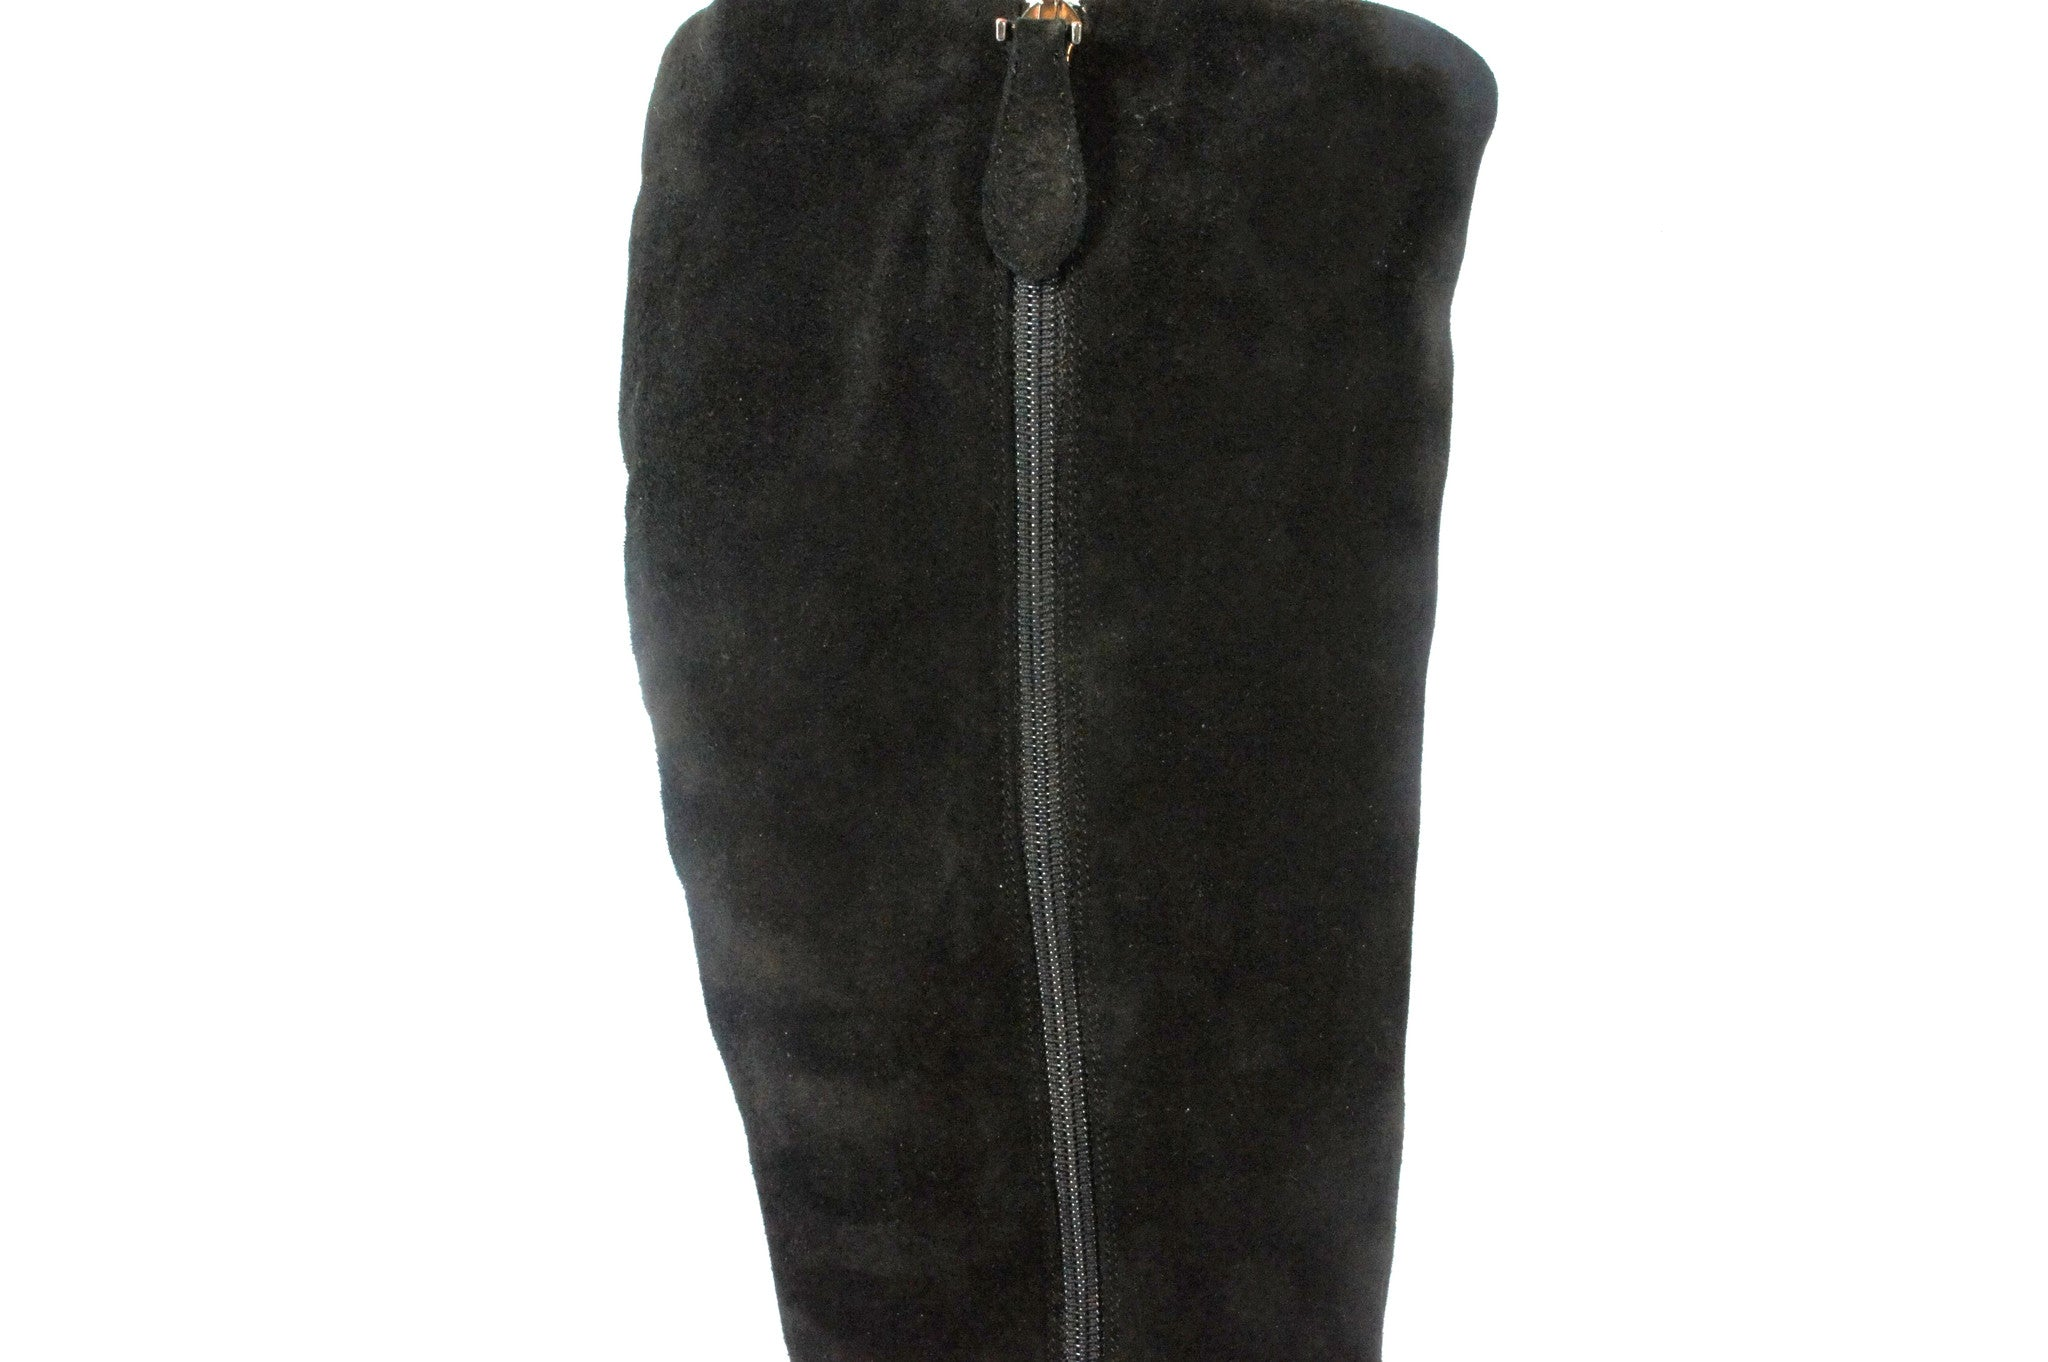 Alaia Black Suede Knee High Boots (Size 40) - Encore Consignment - 8